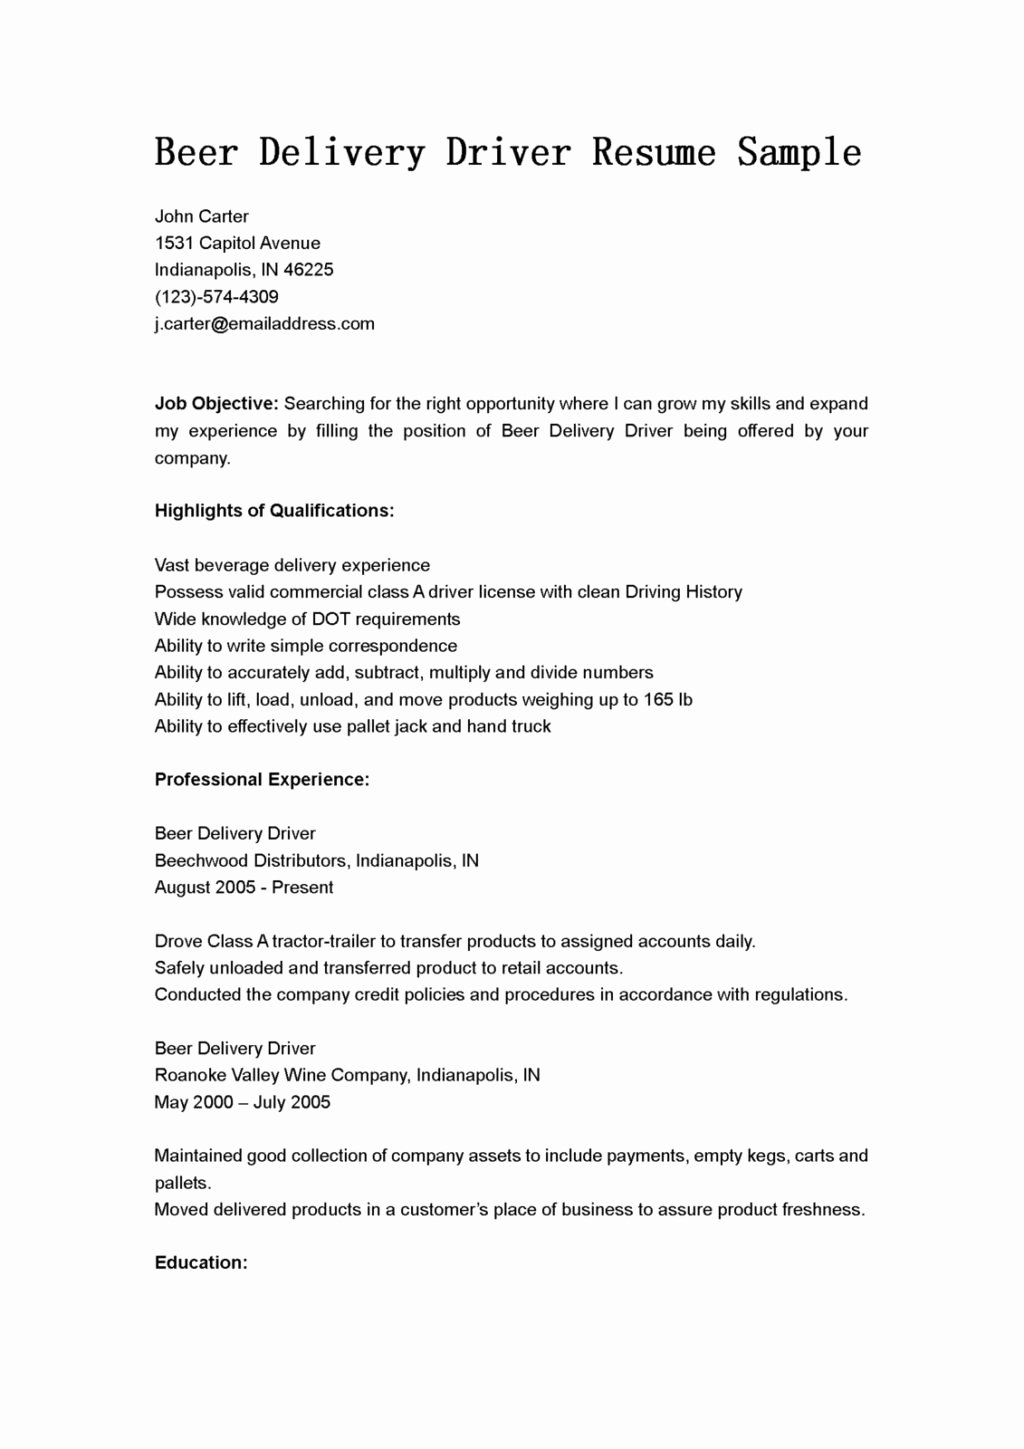 Driver Resume Sample Objective